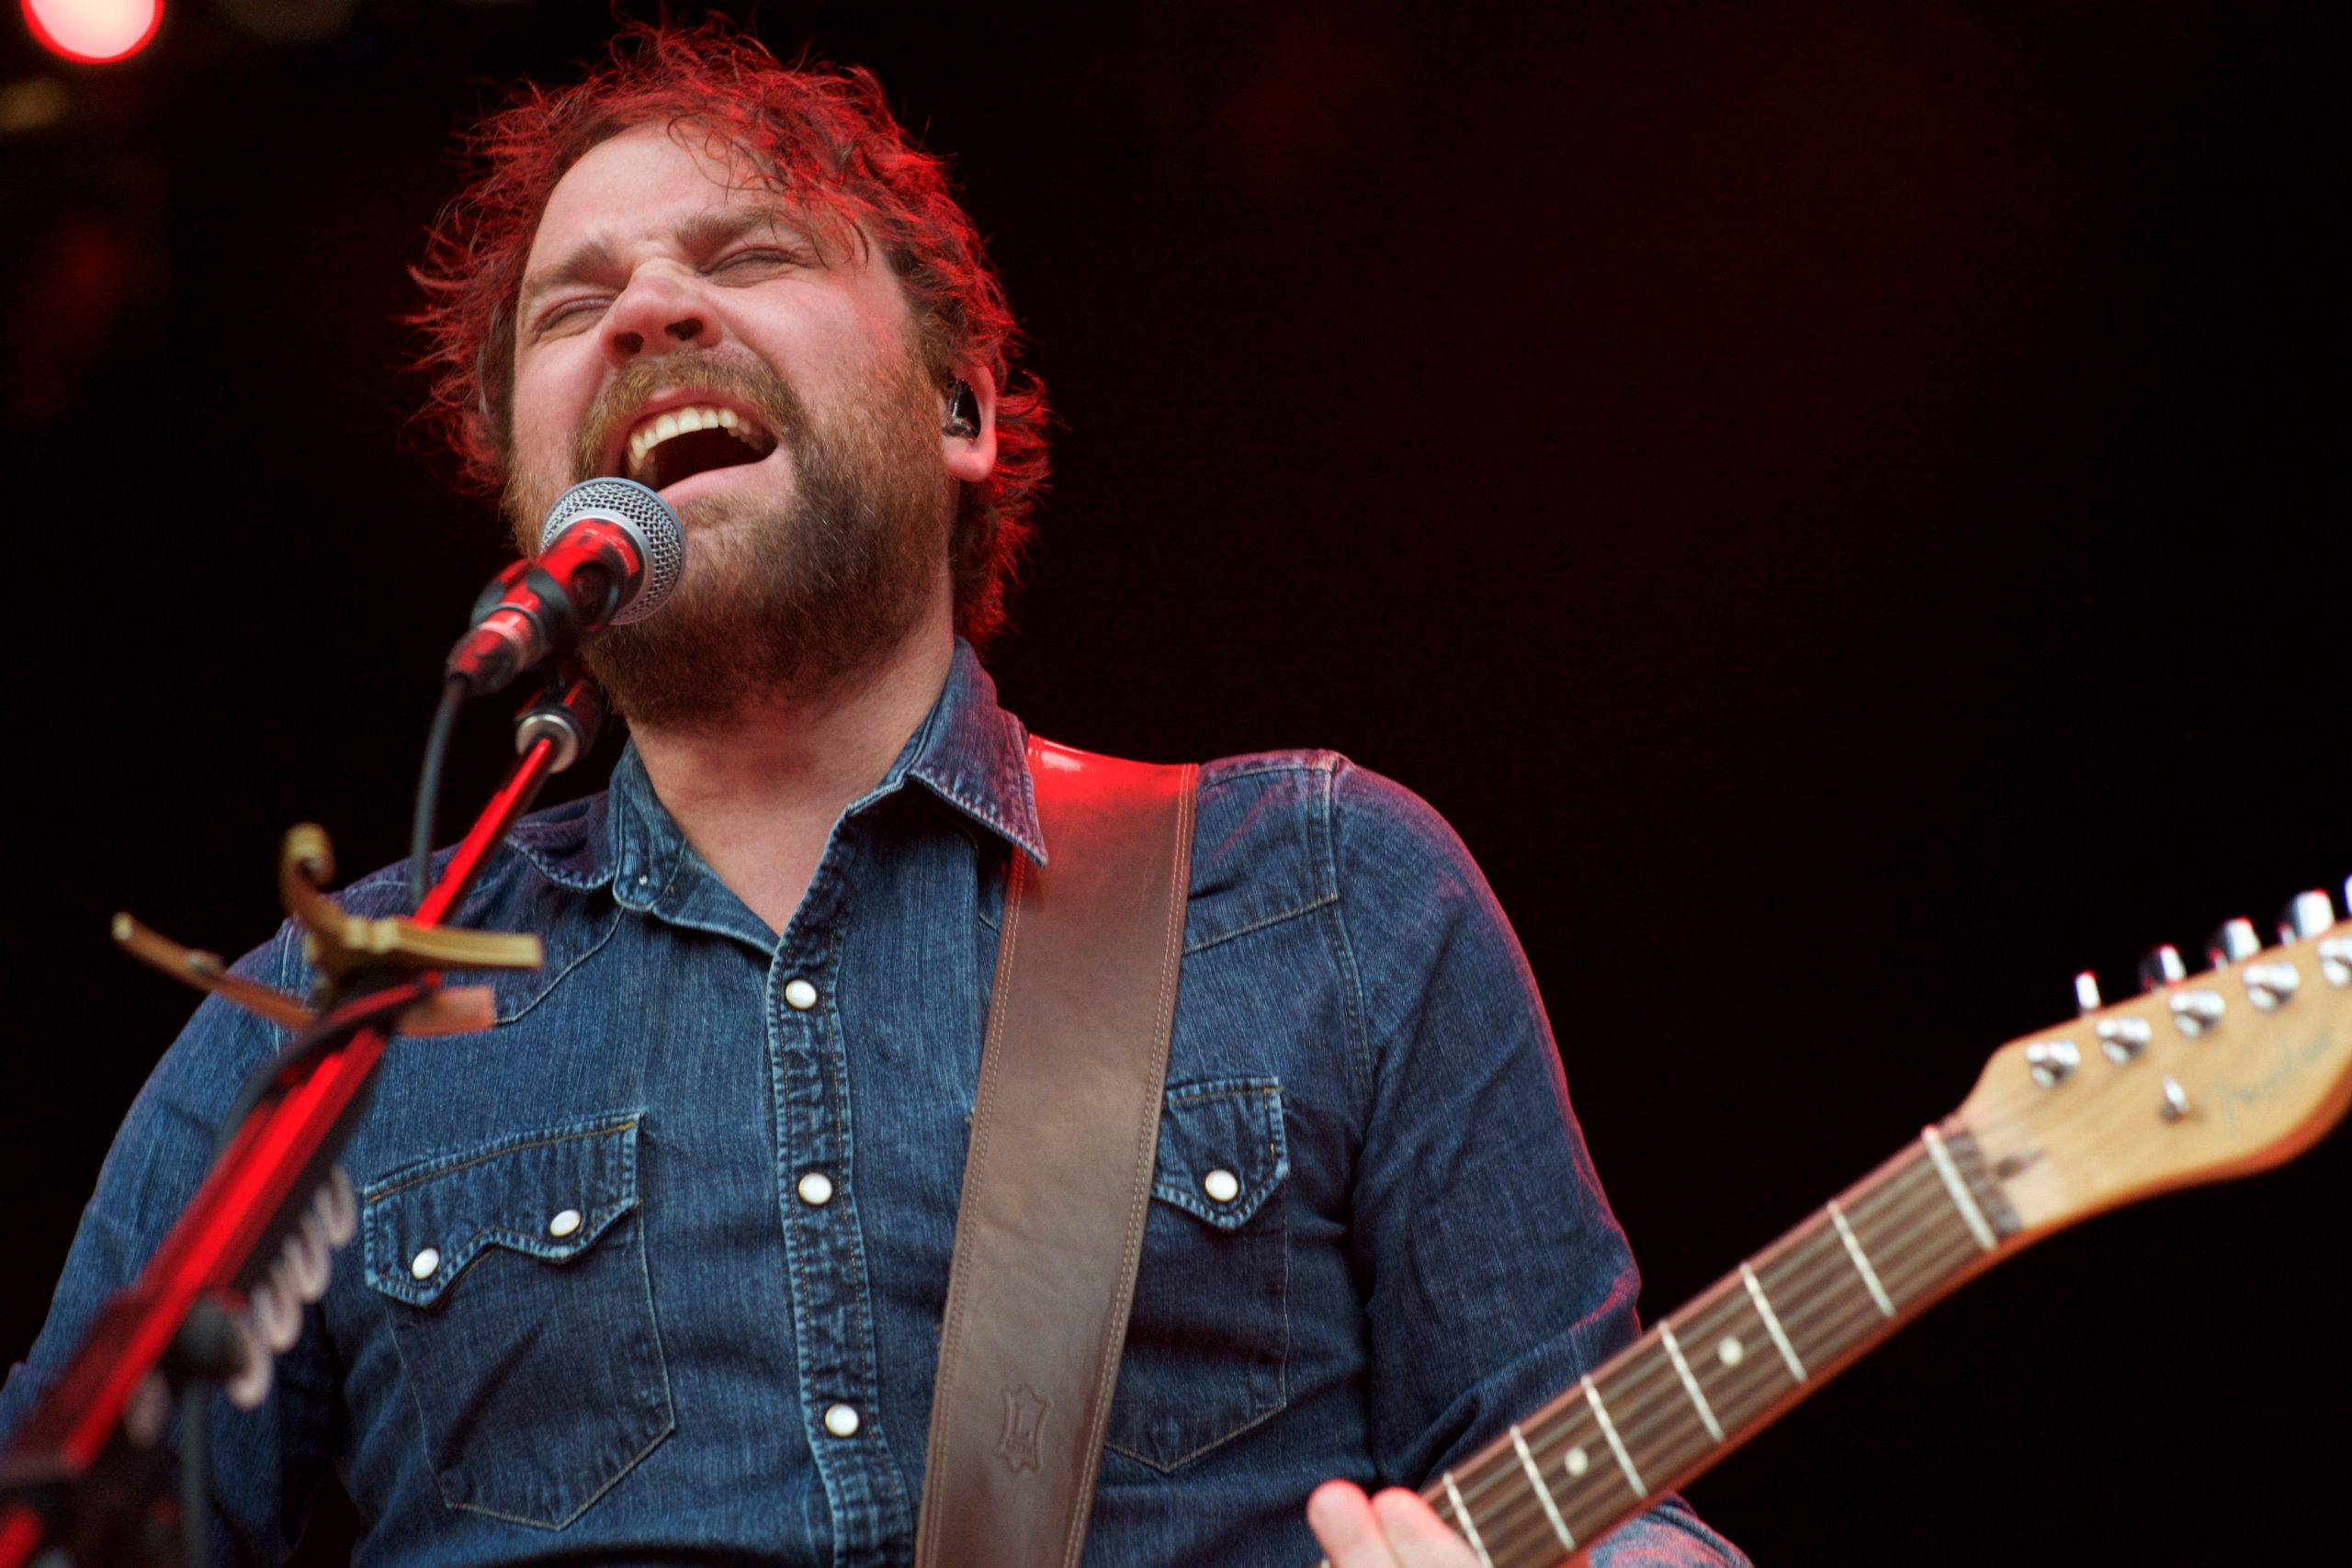 Scott Hutchison, Frightened Rabbit Singer, Is Found Dead at 36